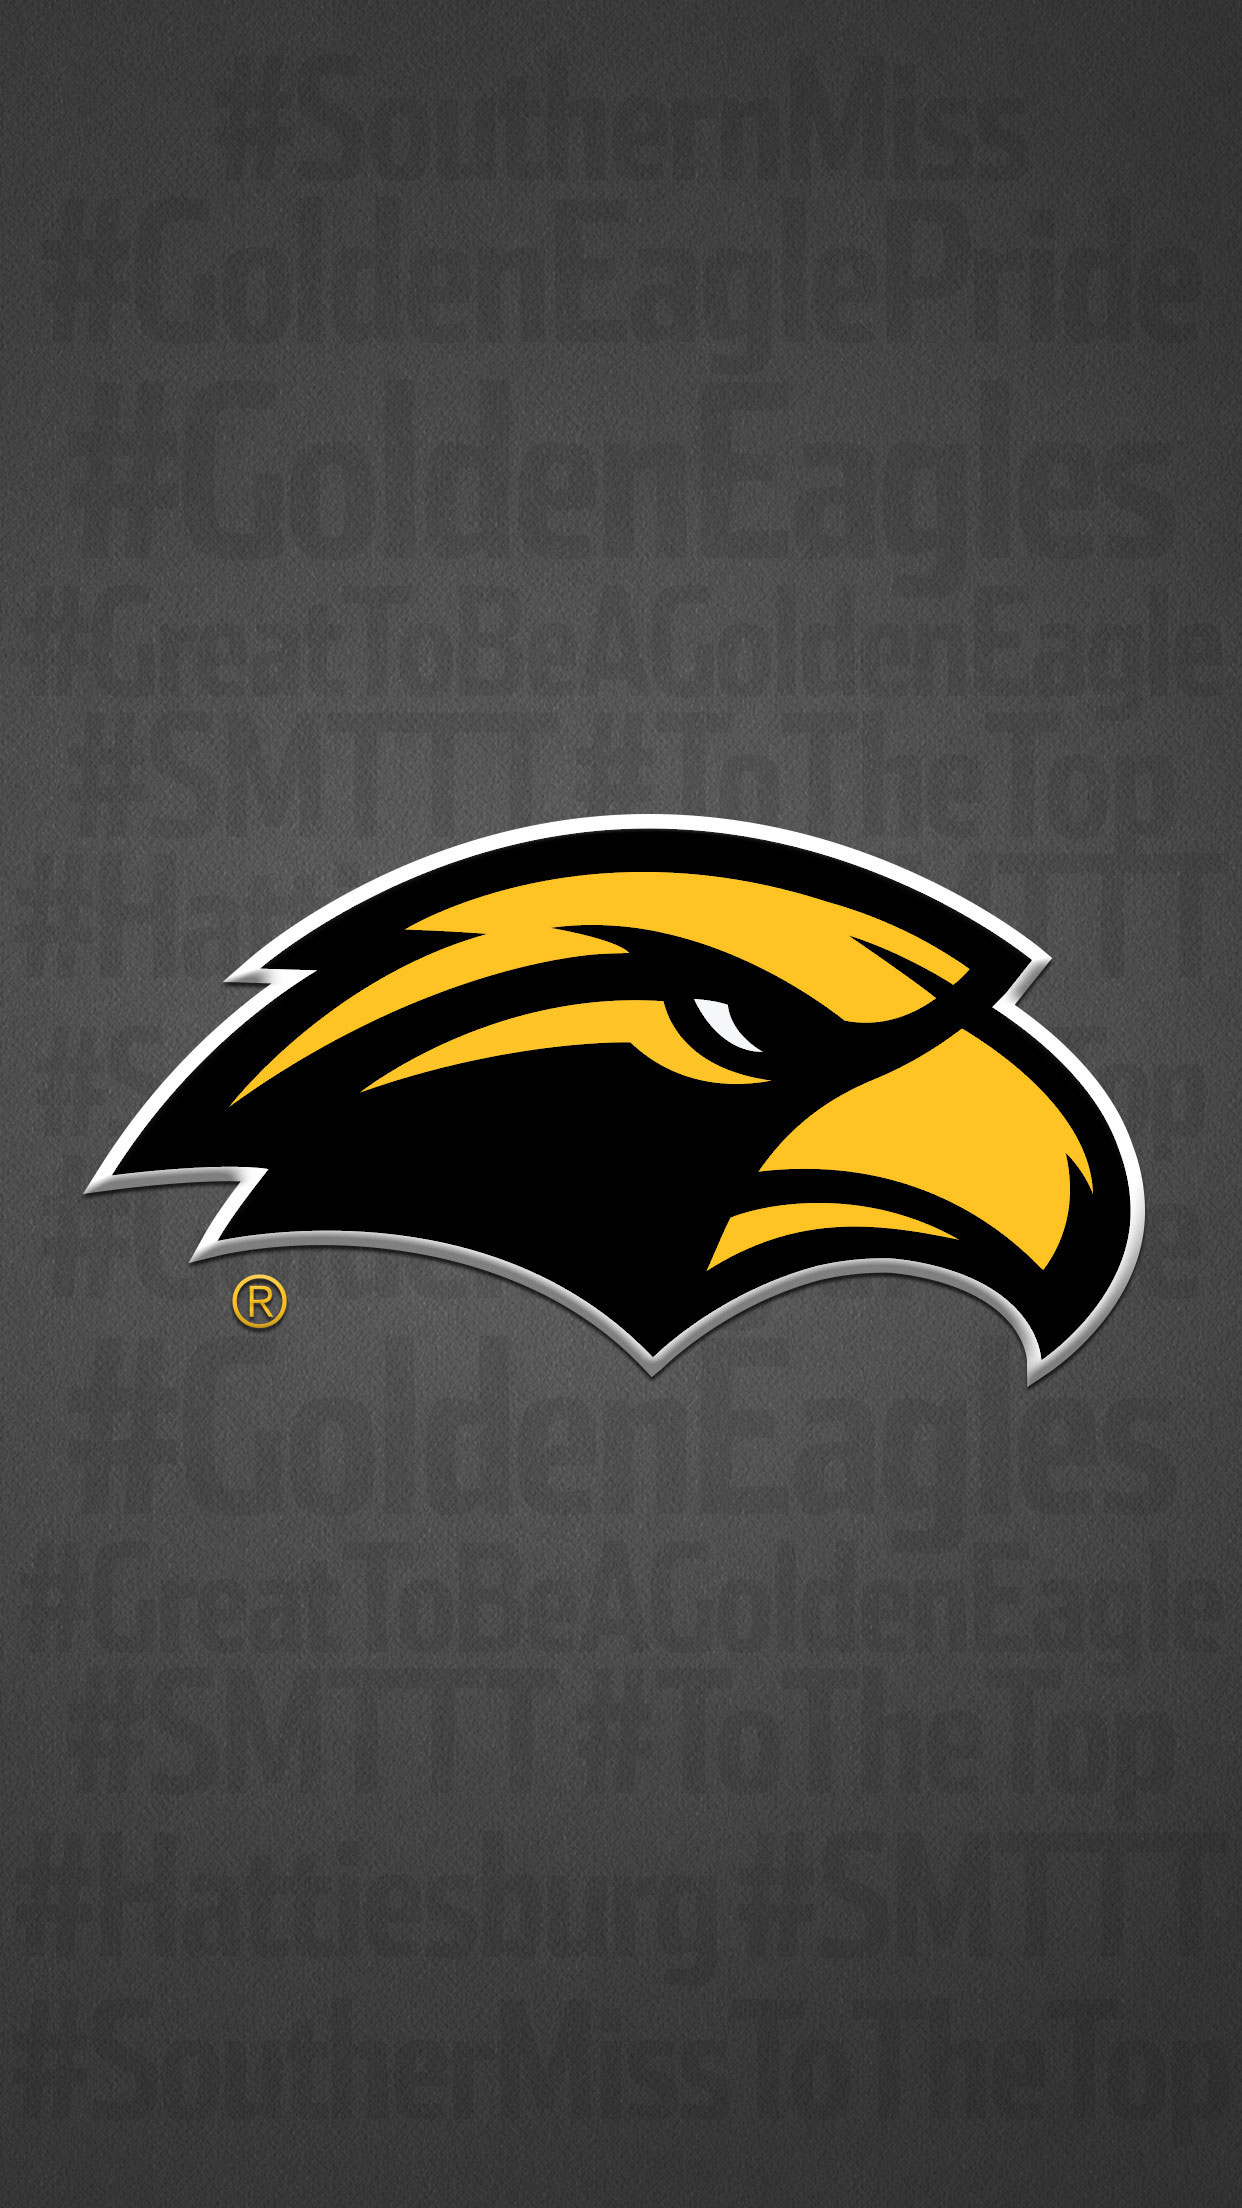 Southern Miss Wallpaper